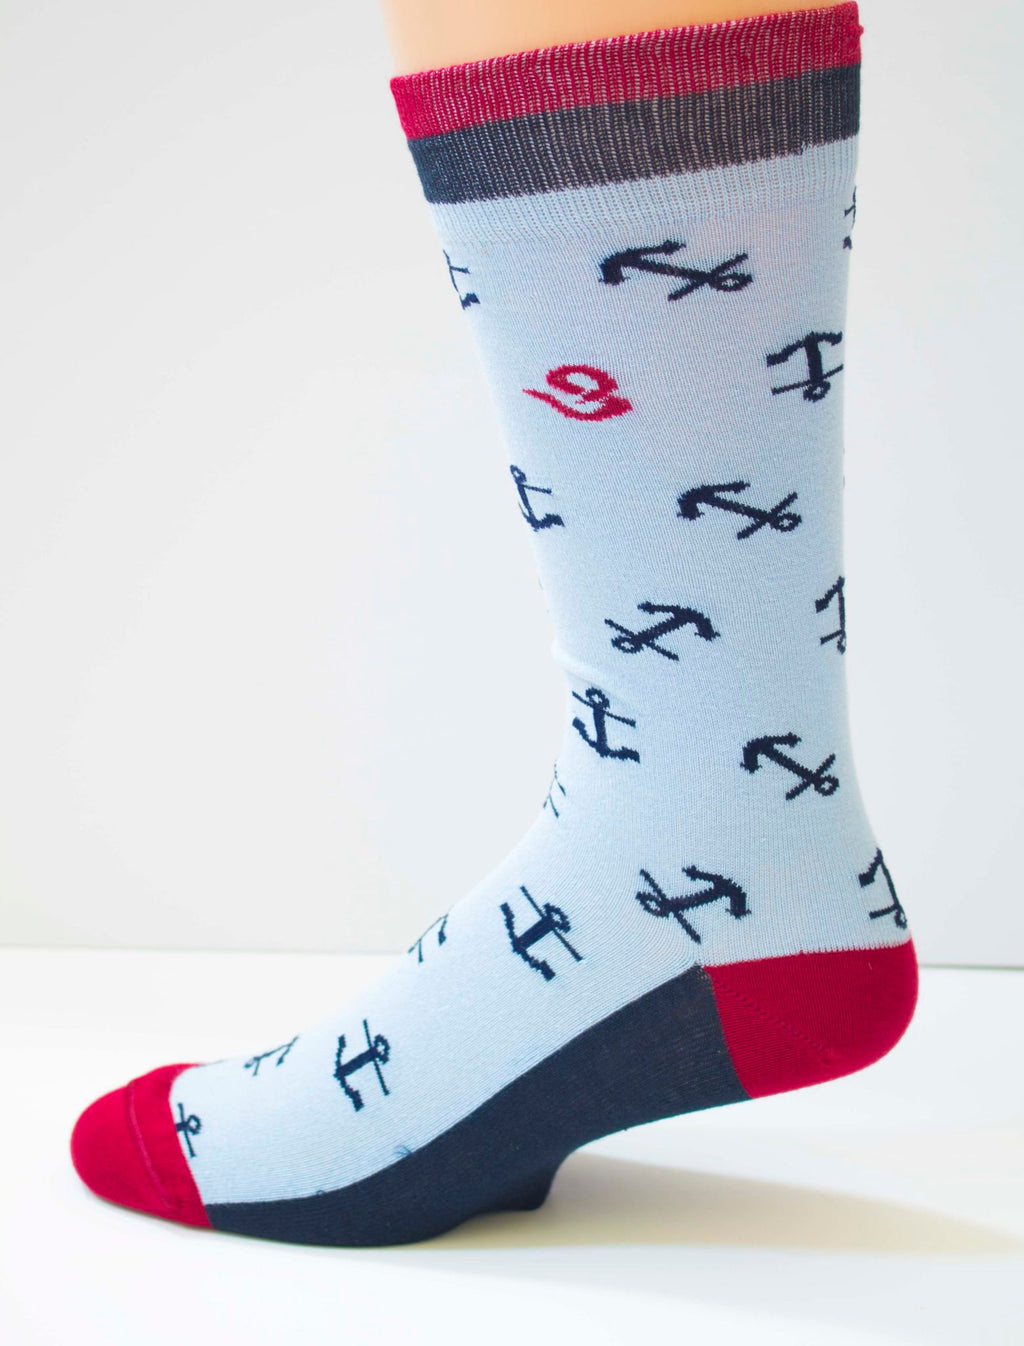 Anchors Away Women's Socks